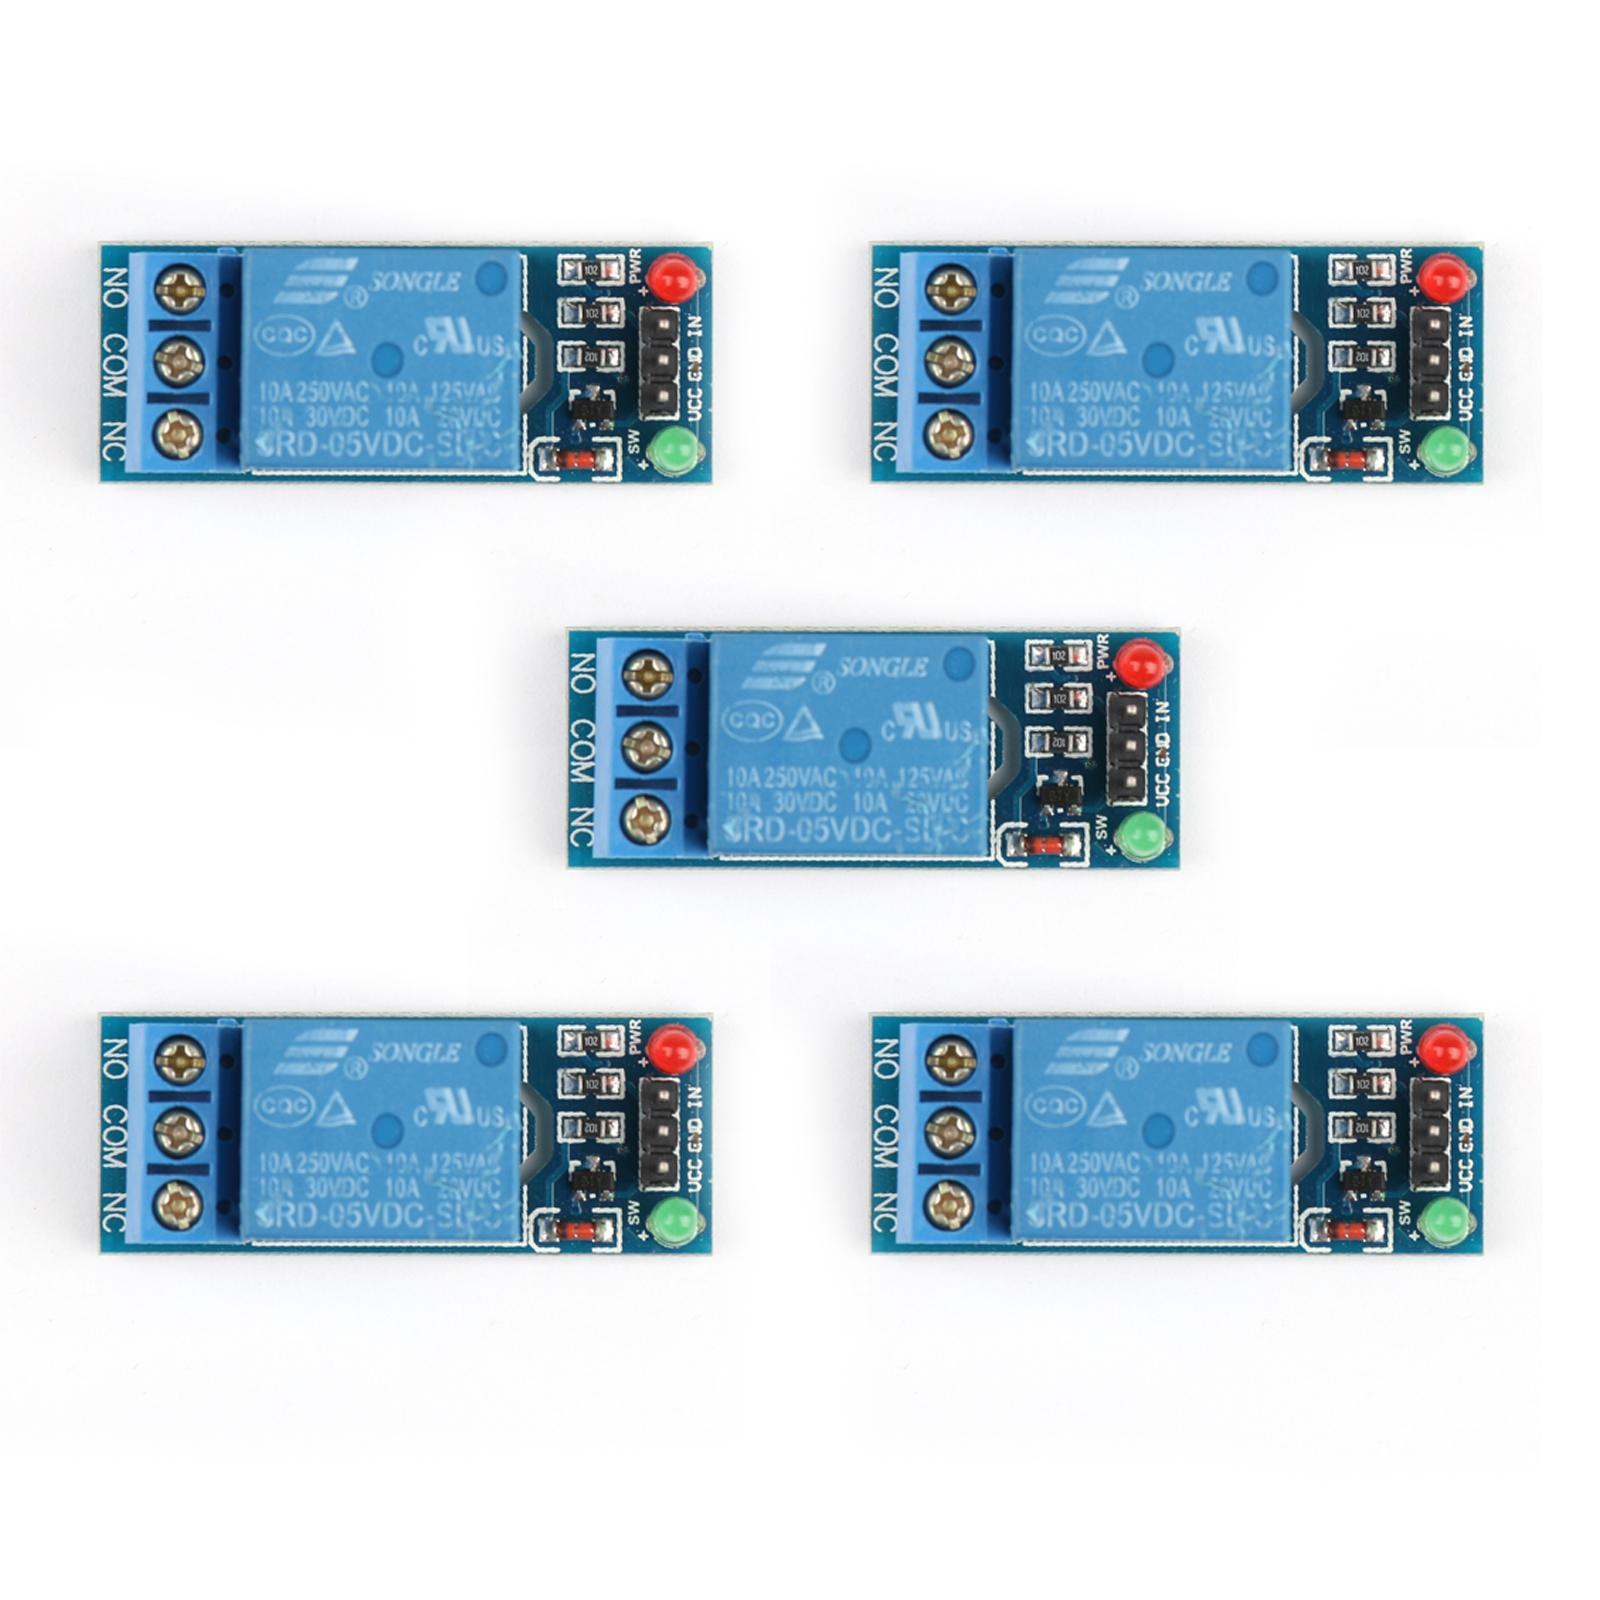 Areyourshop 5pcs 1 Channel Dc 5v Relay Switch Module For Arduino Raspberry Pi Pic Arm Avr